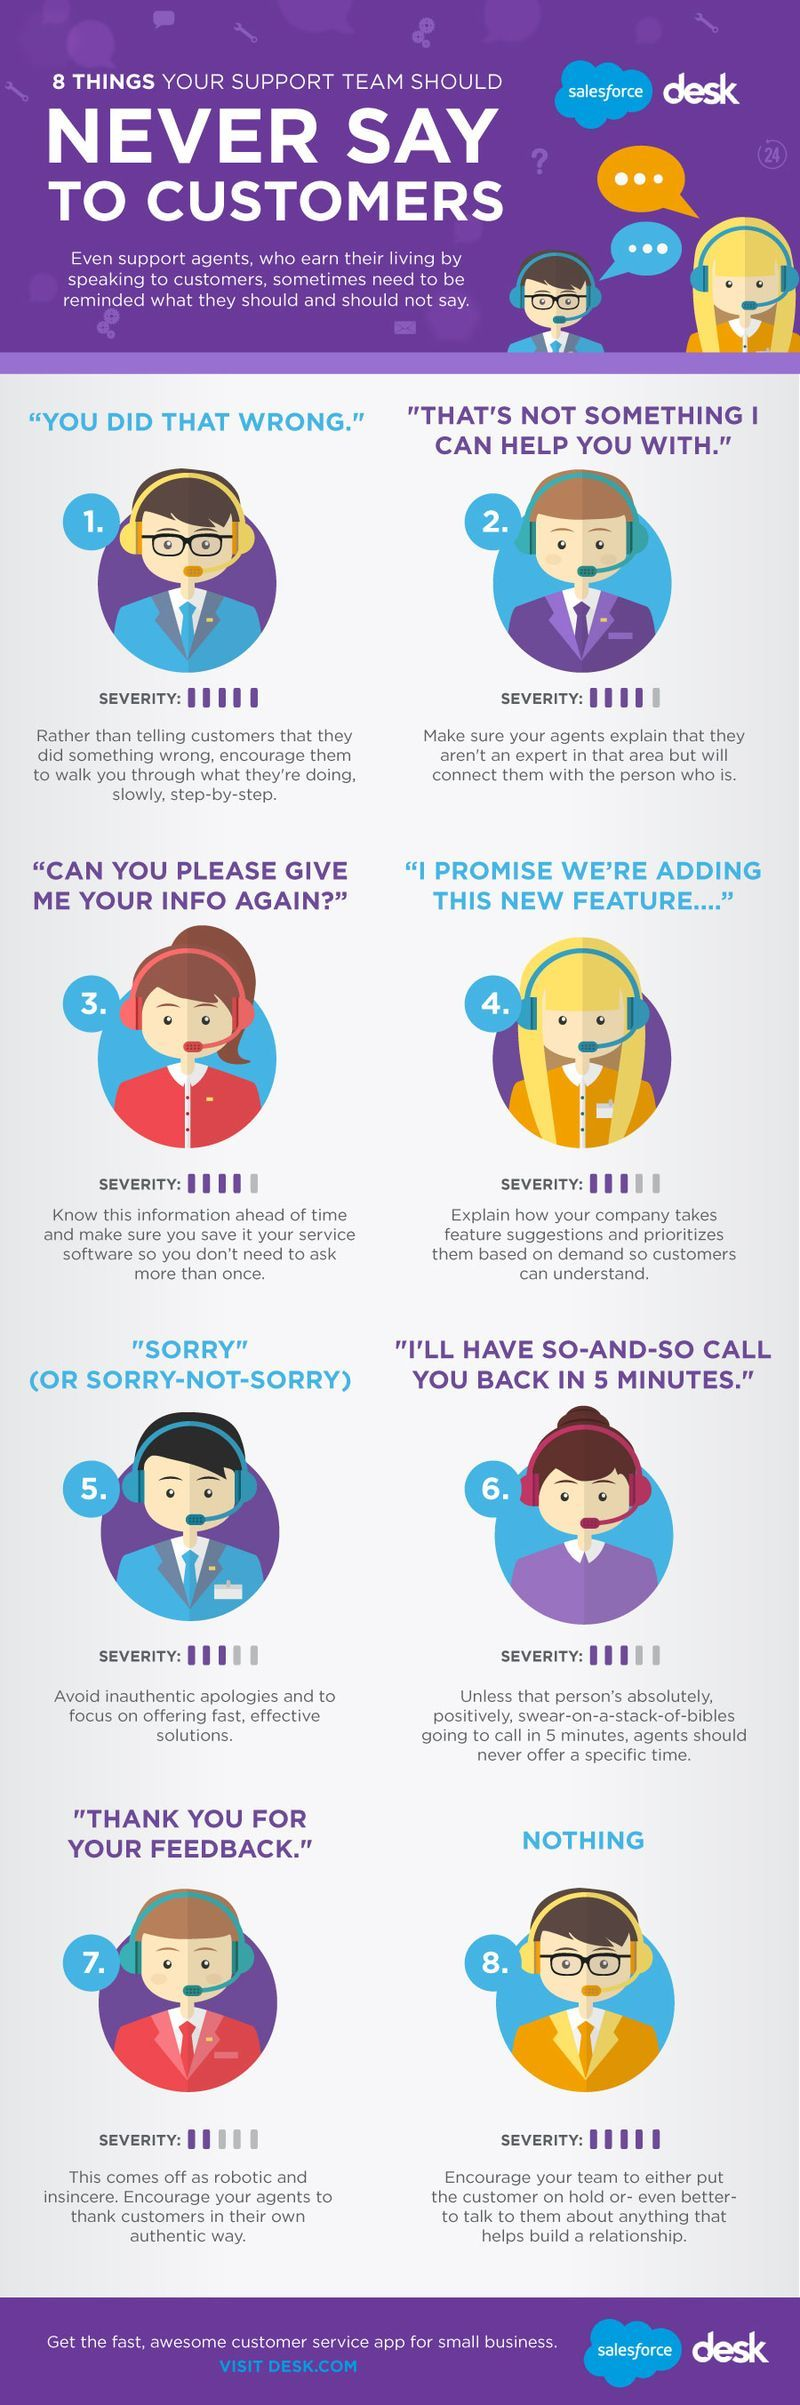 What makes excellent customer service?